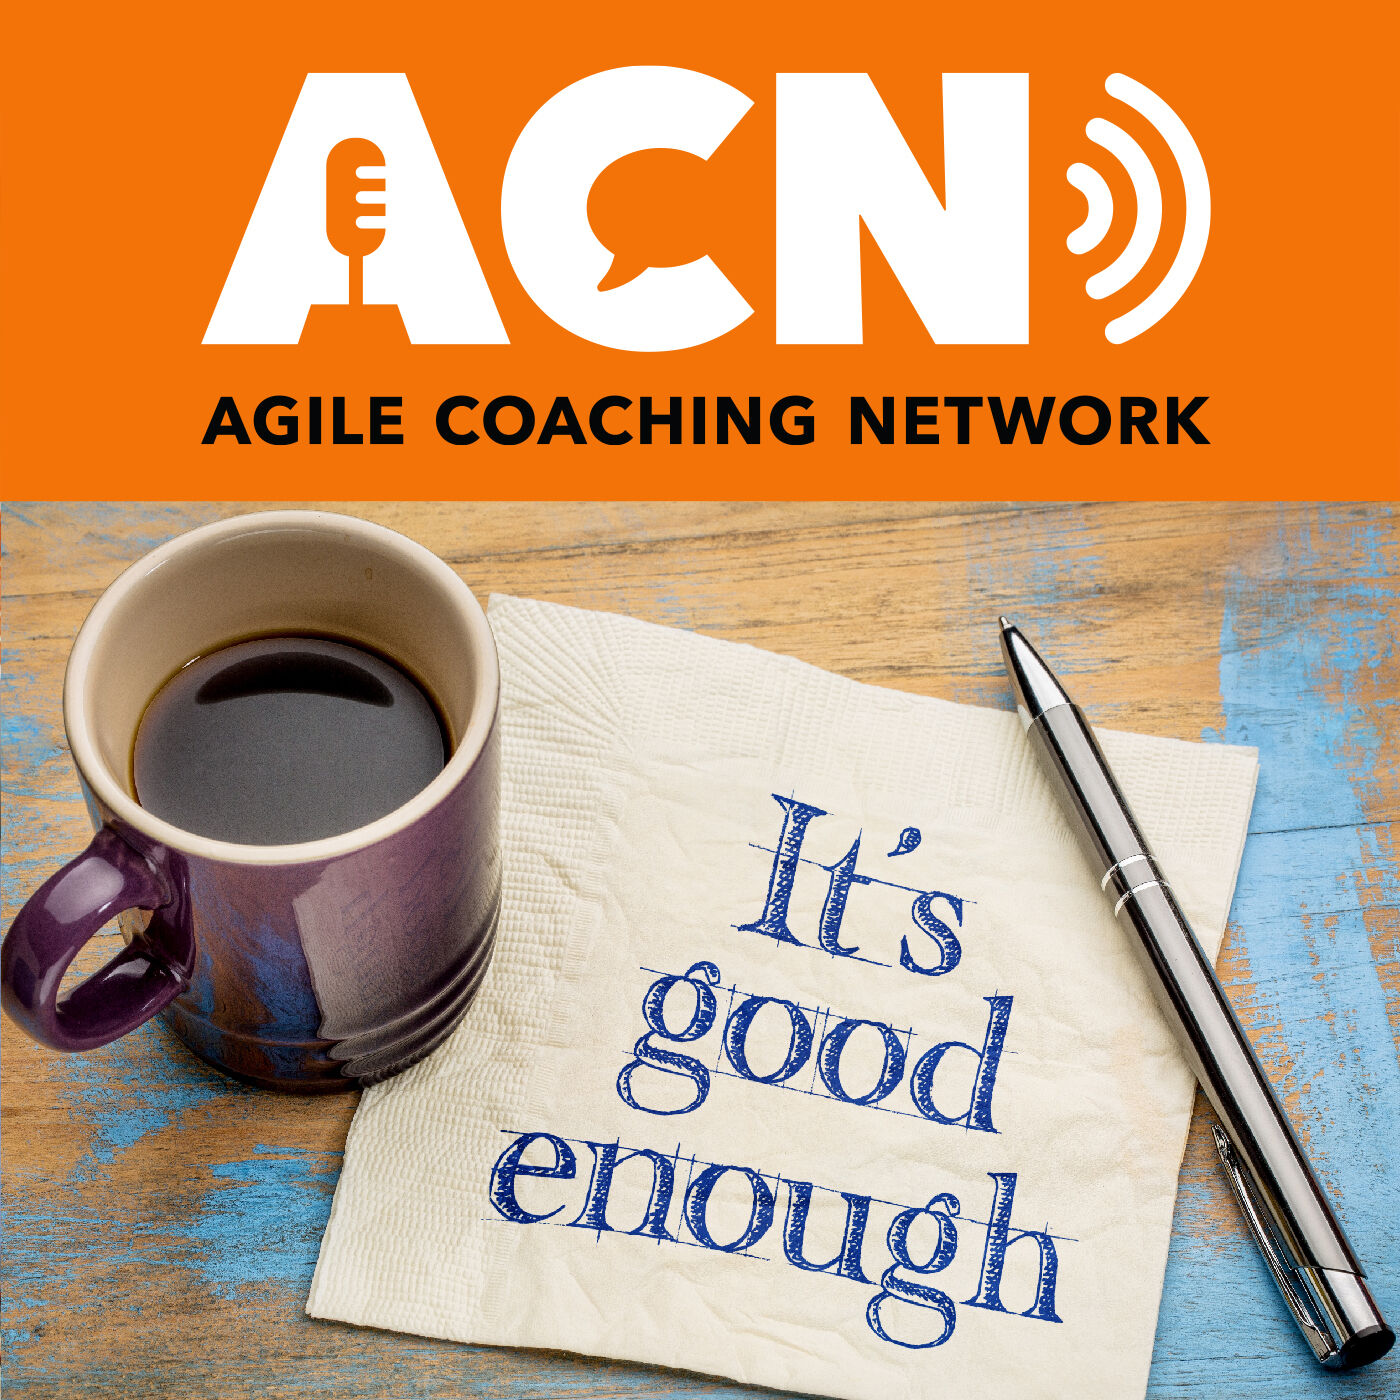 What does it mean to be good enough, and how should Agile coaches measure their success